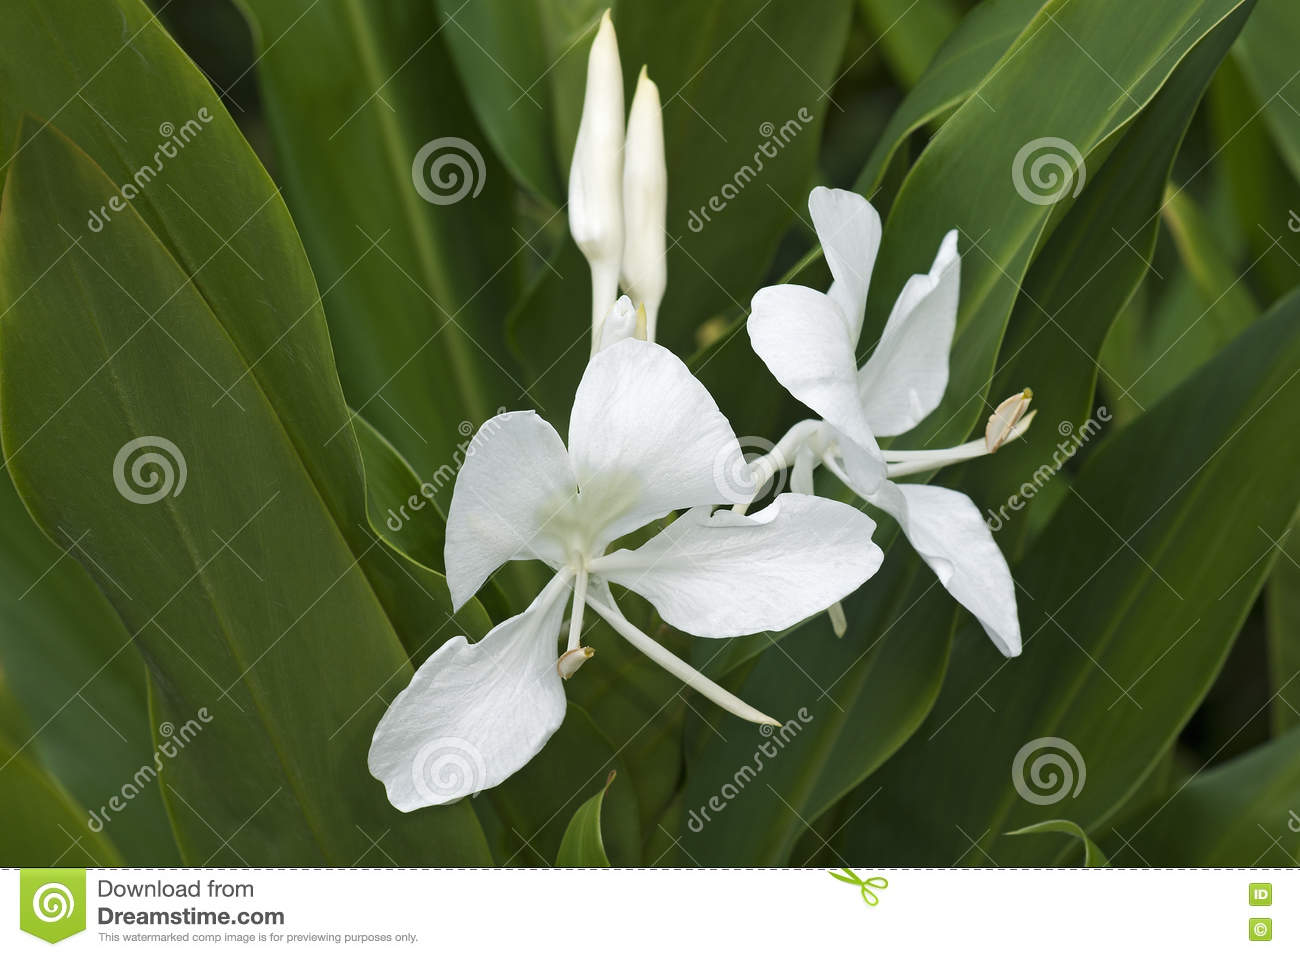 White ginger lily flowers stock image image of flora 81324029 download white ginger lily flowers stock image image of flora 81324029 mightylinksfo